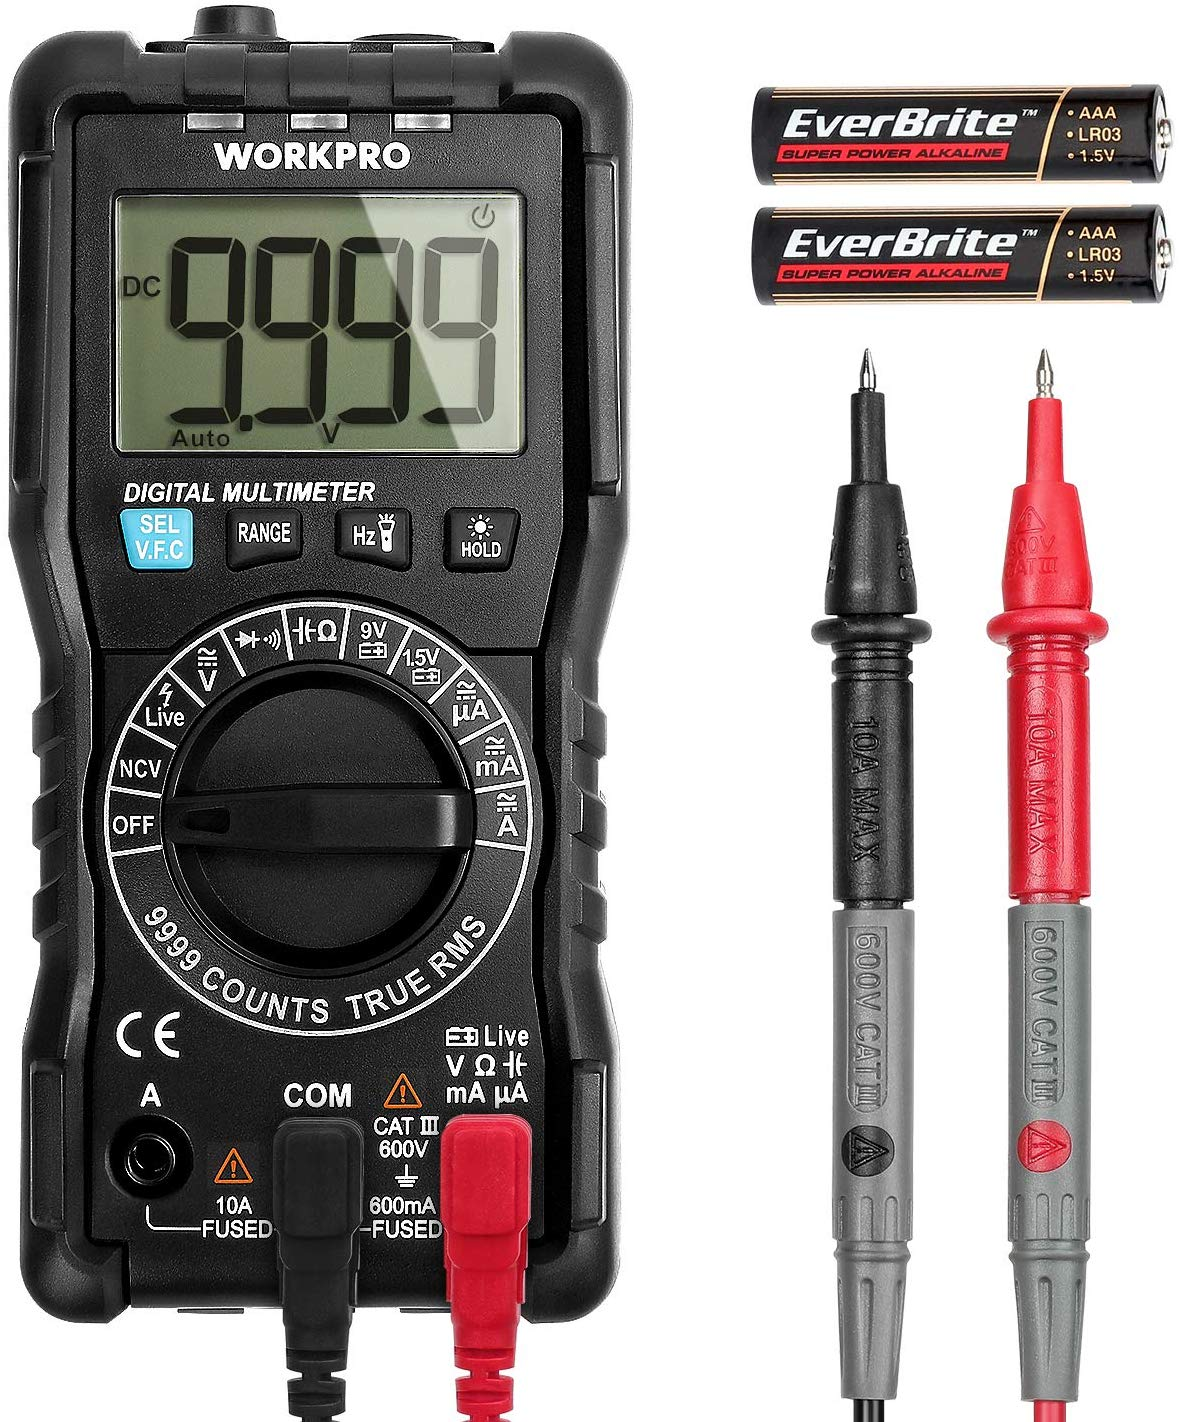 WORKPRO Multimeter Digital Multi Tester, True RMS 9999 Counts, Auto-Ranging Electrical Tester